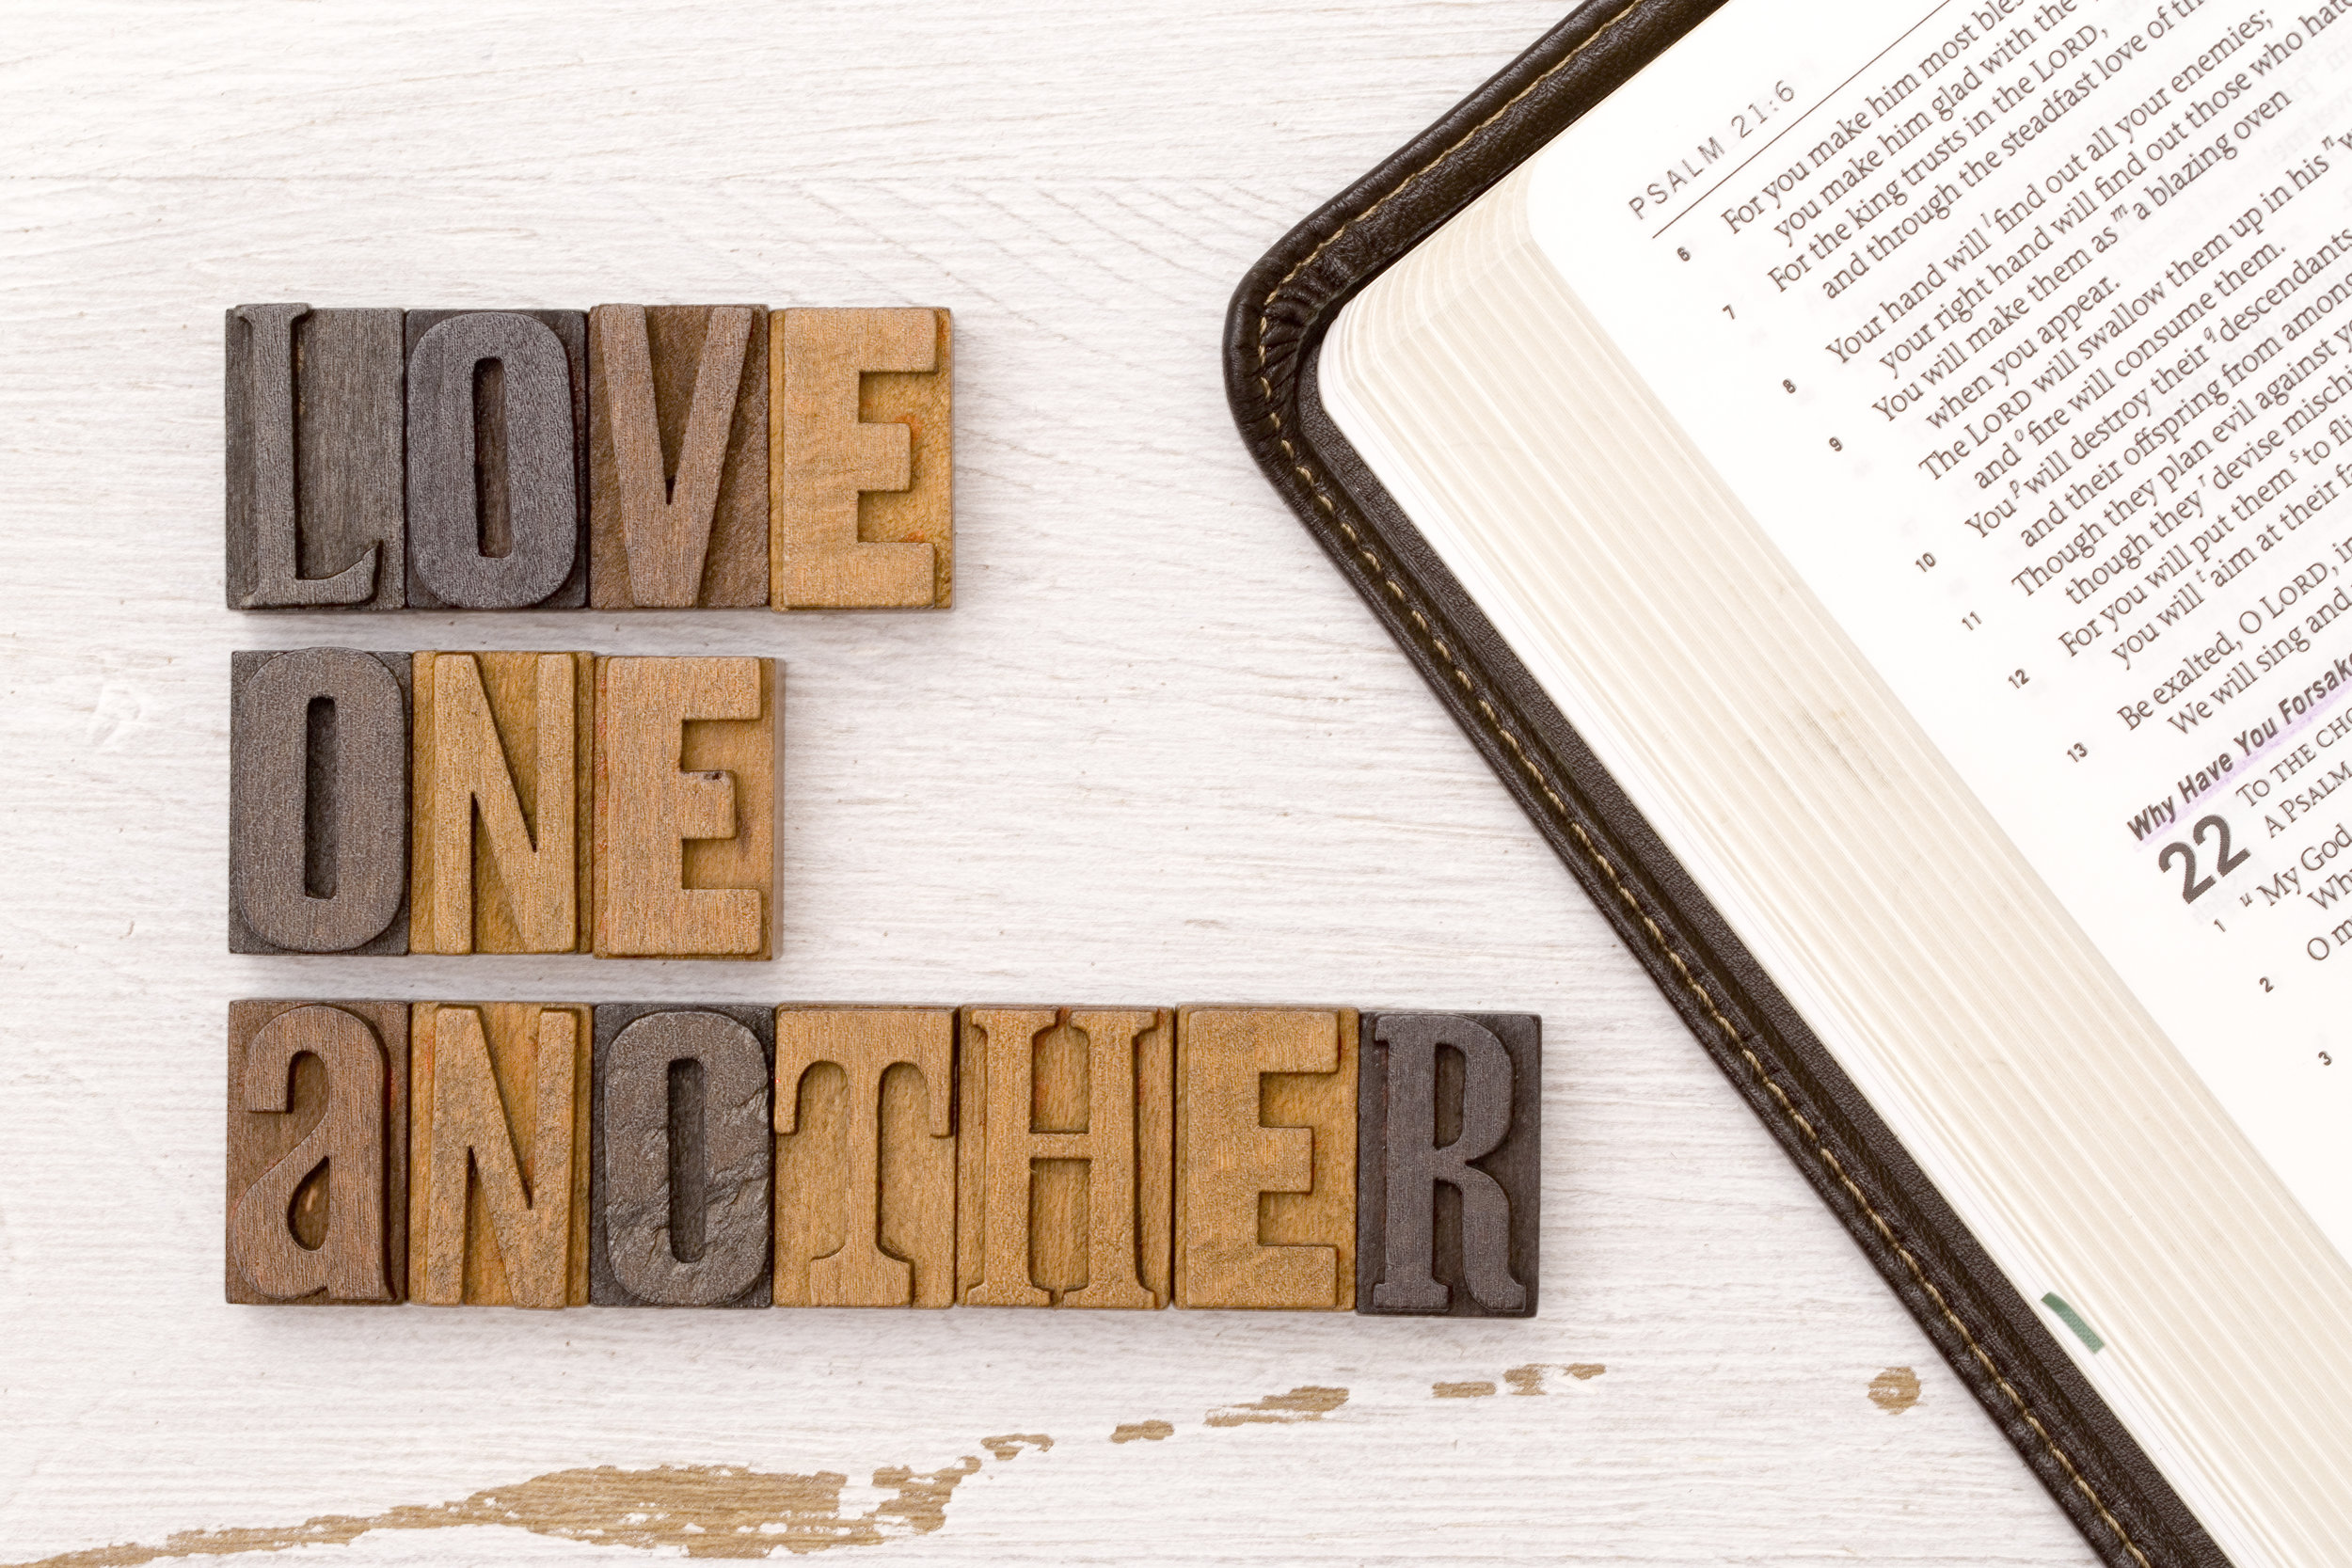 Christ Church Loves - We take Jesus's words to